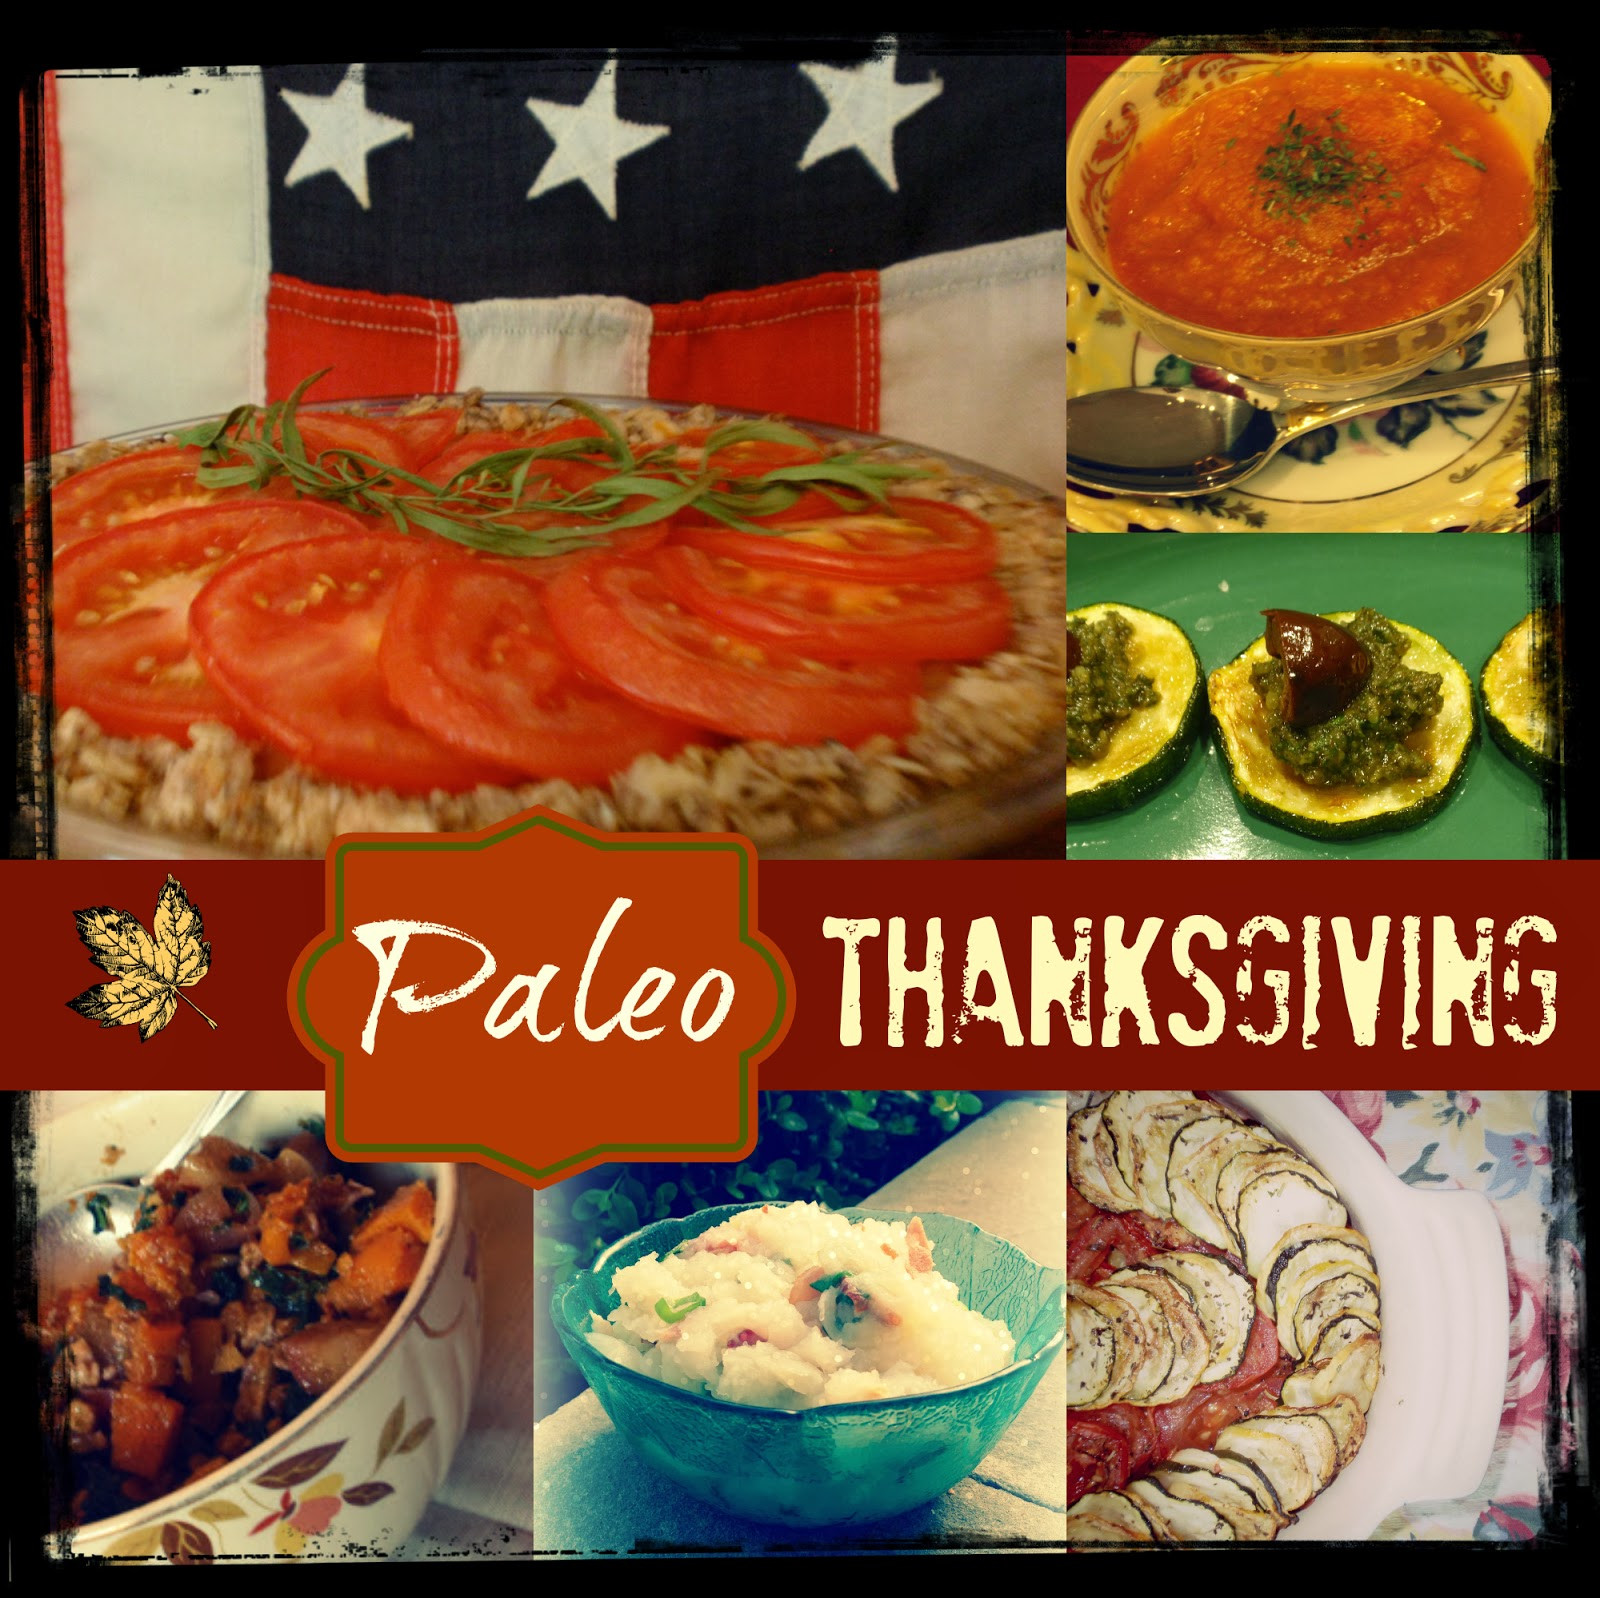 Paleo Thanksgiving Menu  on the titles of the dishes to jump to the recipes